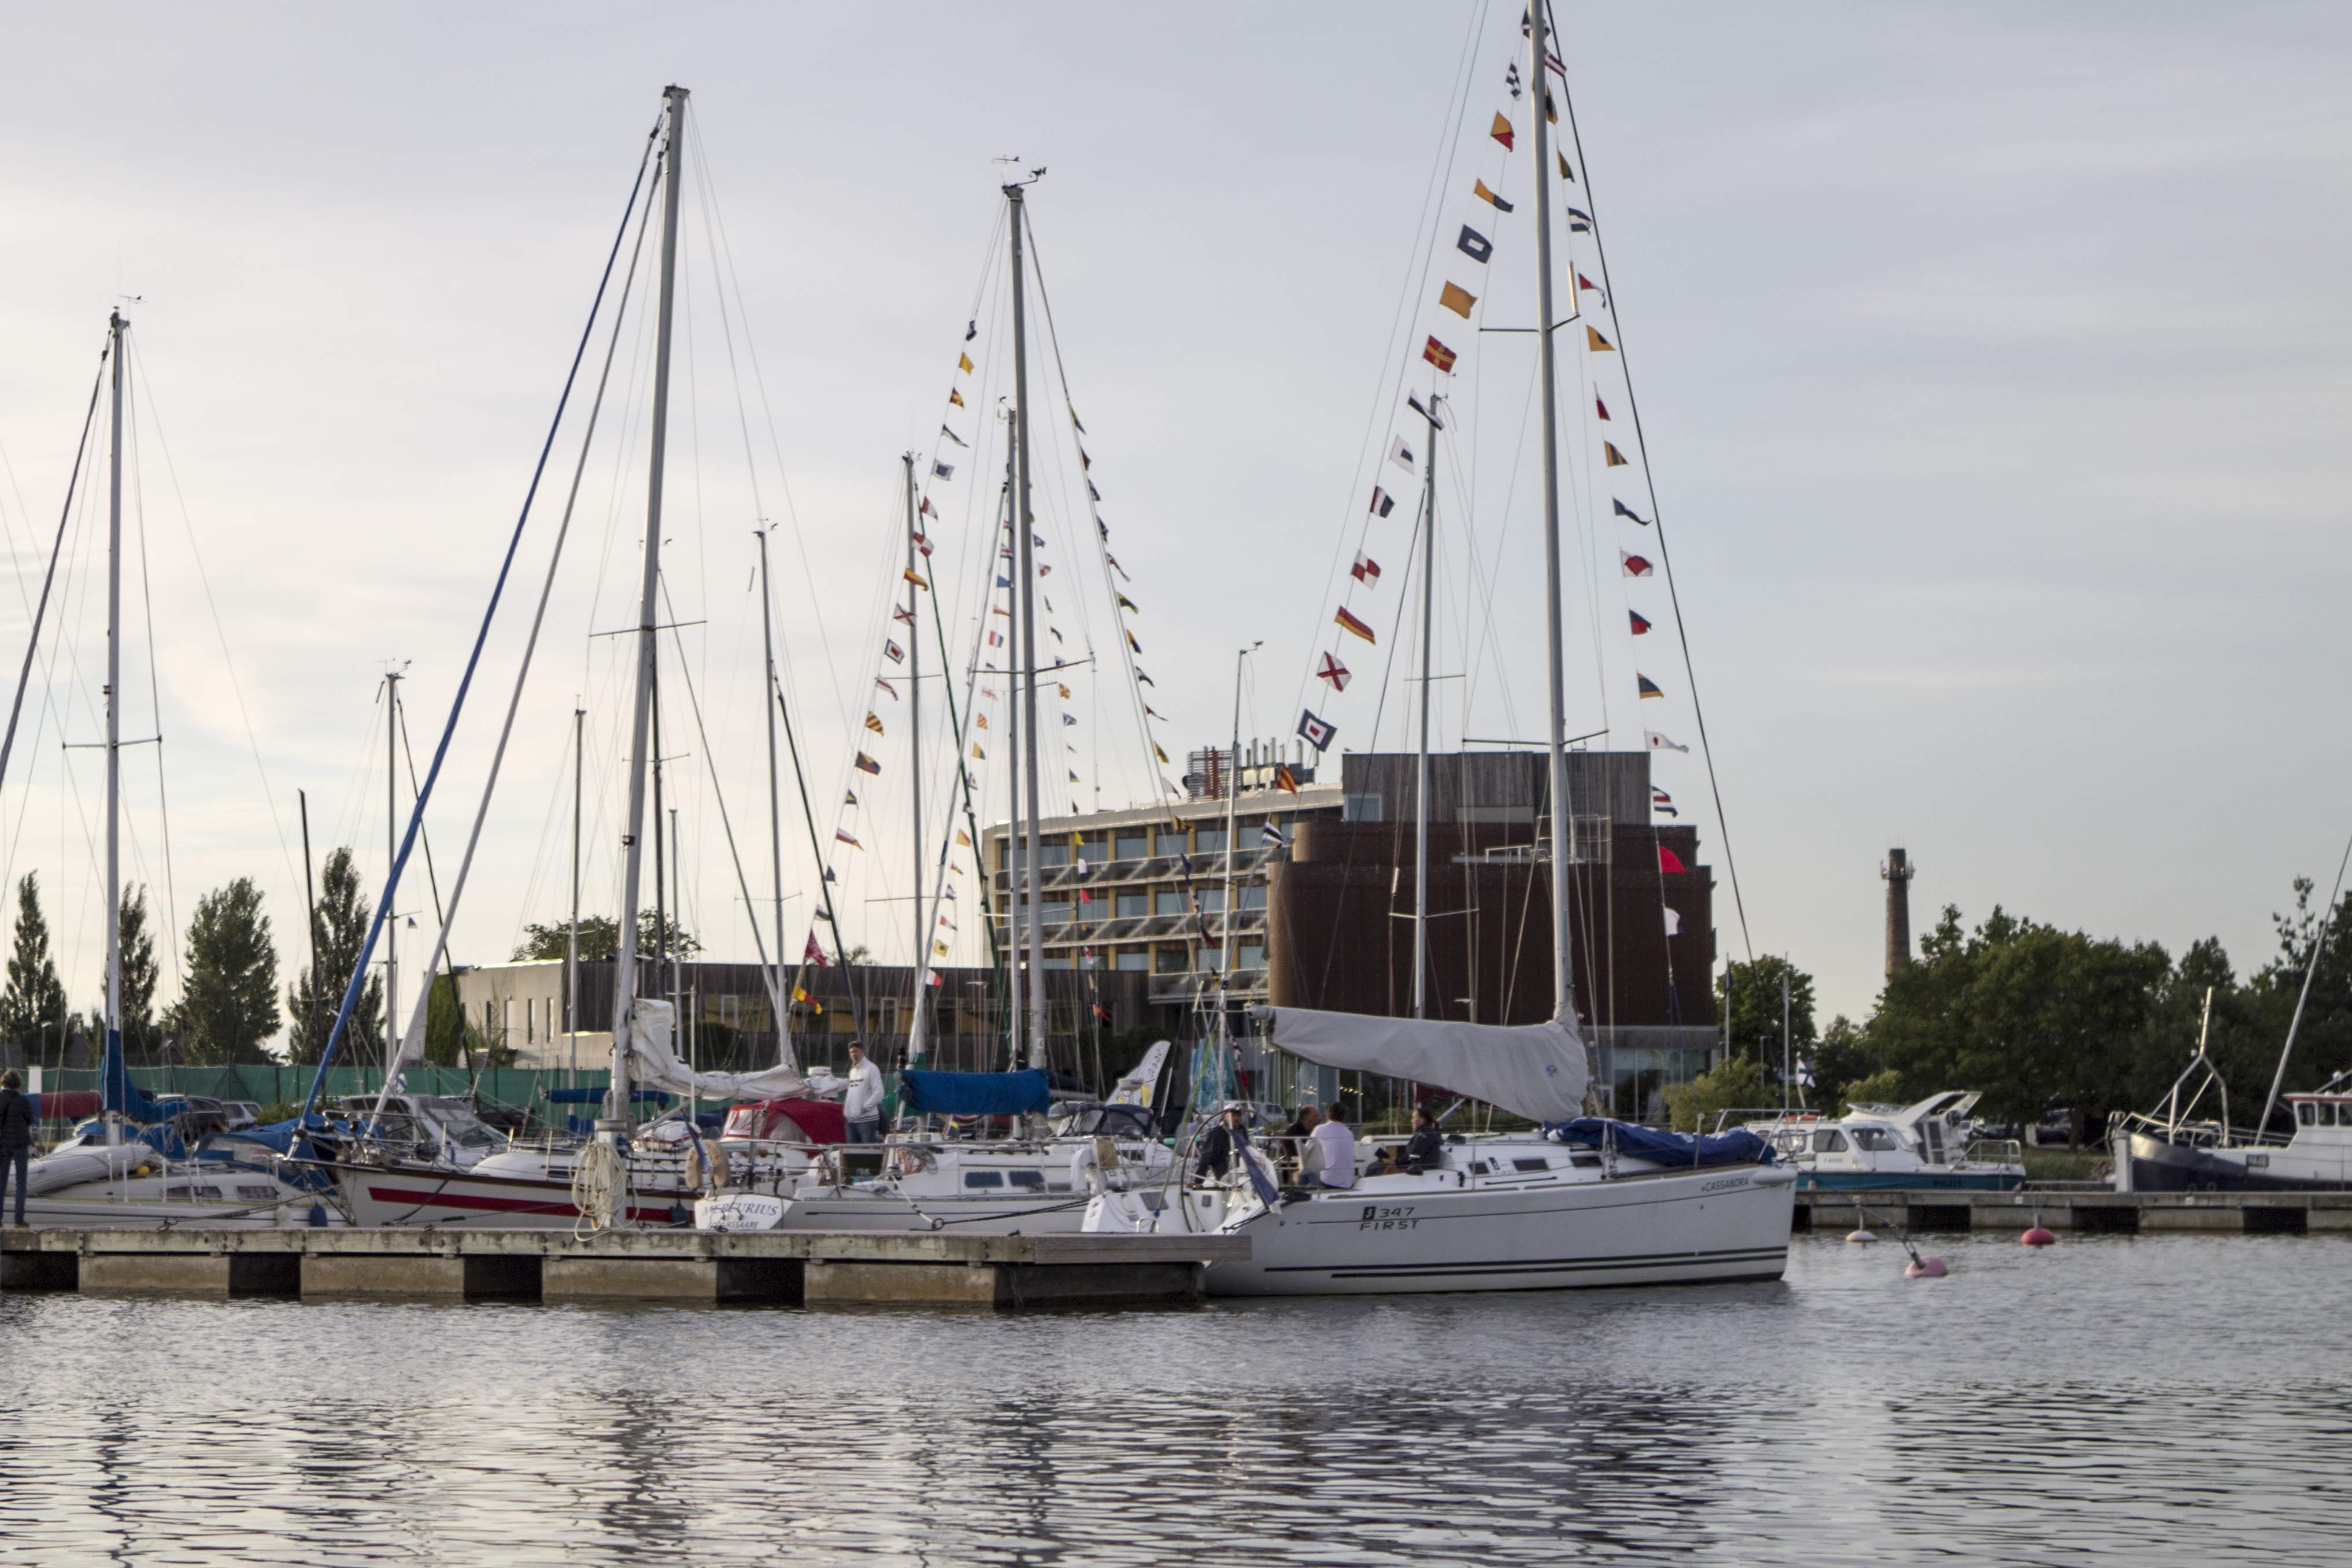 How to get to Saaremaa by yacht?